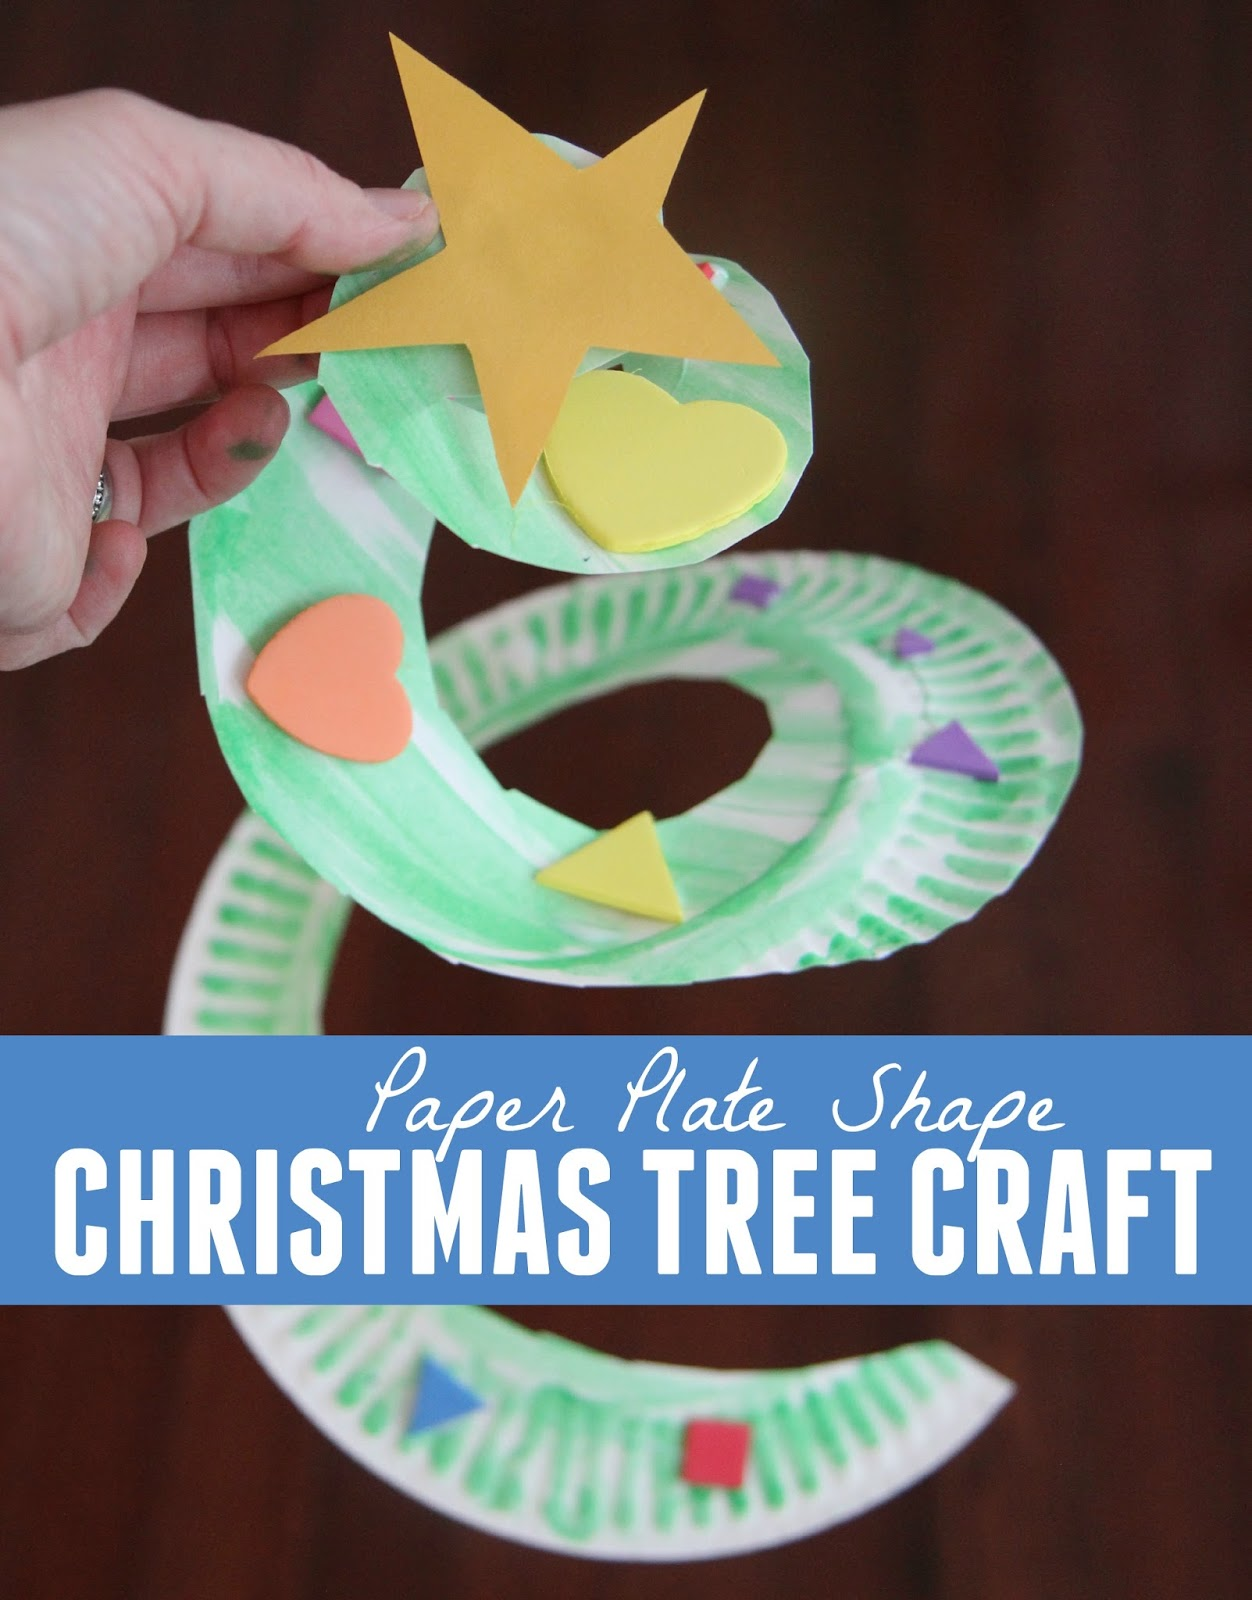 Toddler Christmas Tree Craft.Toddler Approved Paper Plate Shape Christmas Tree Craft